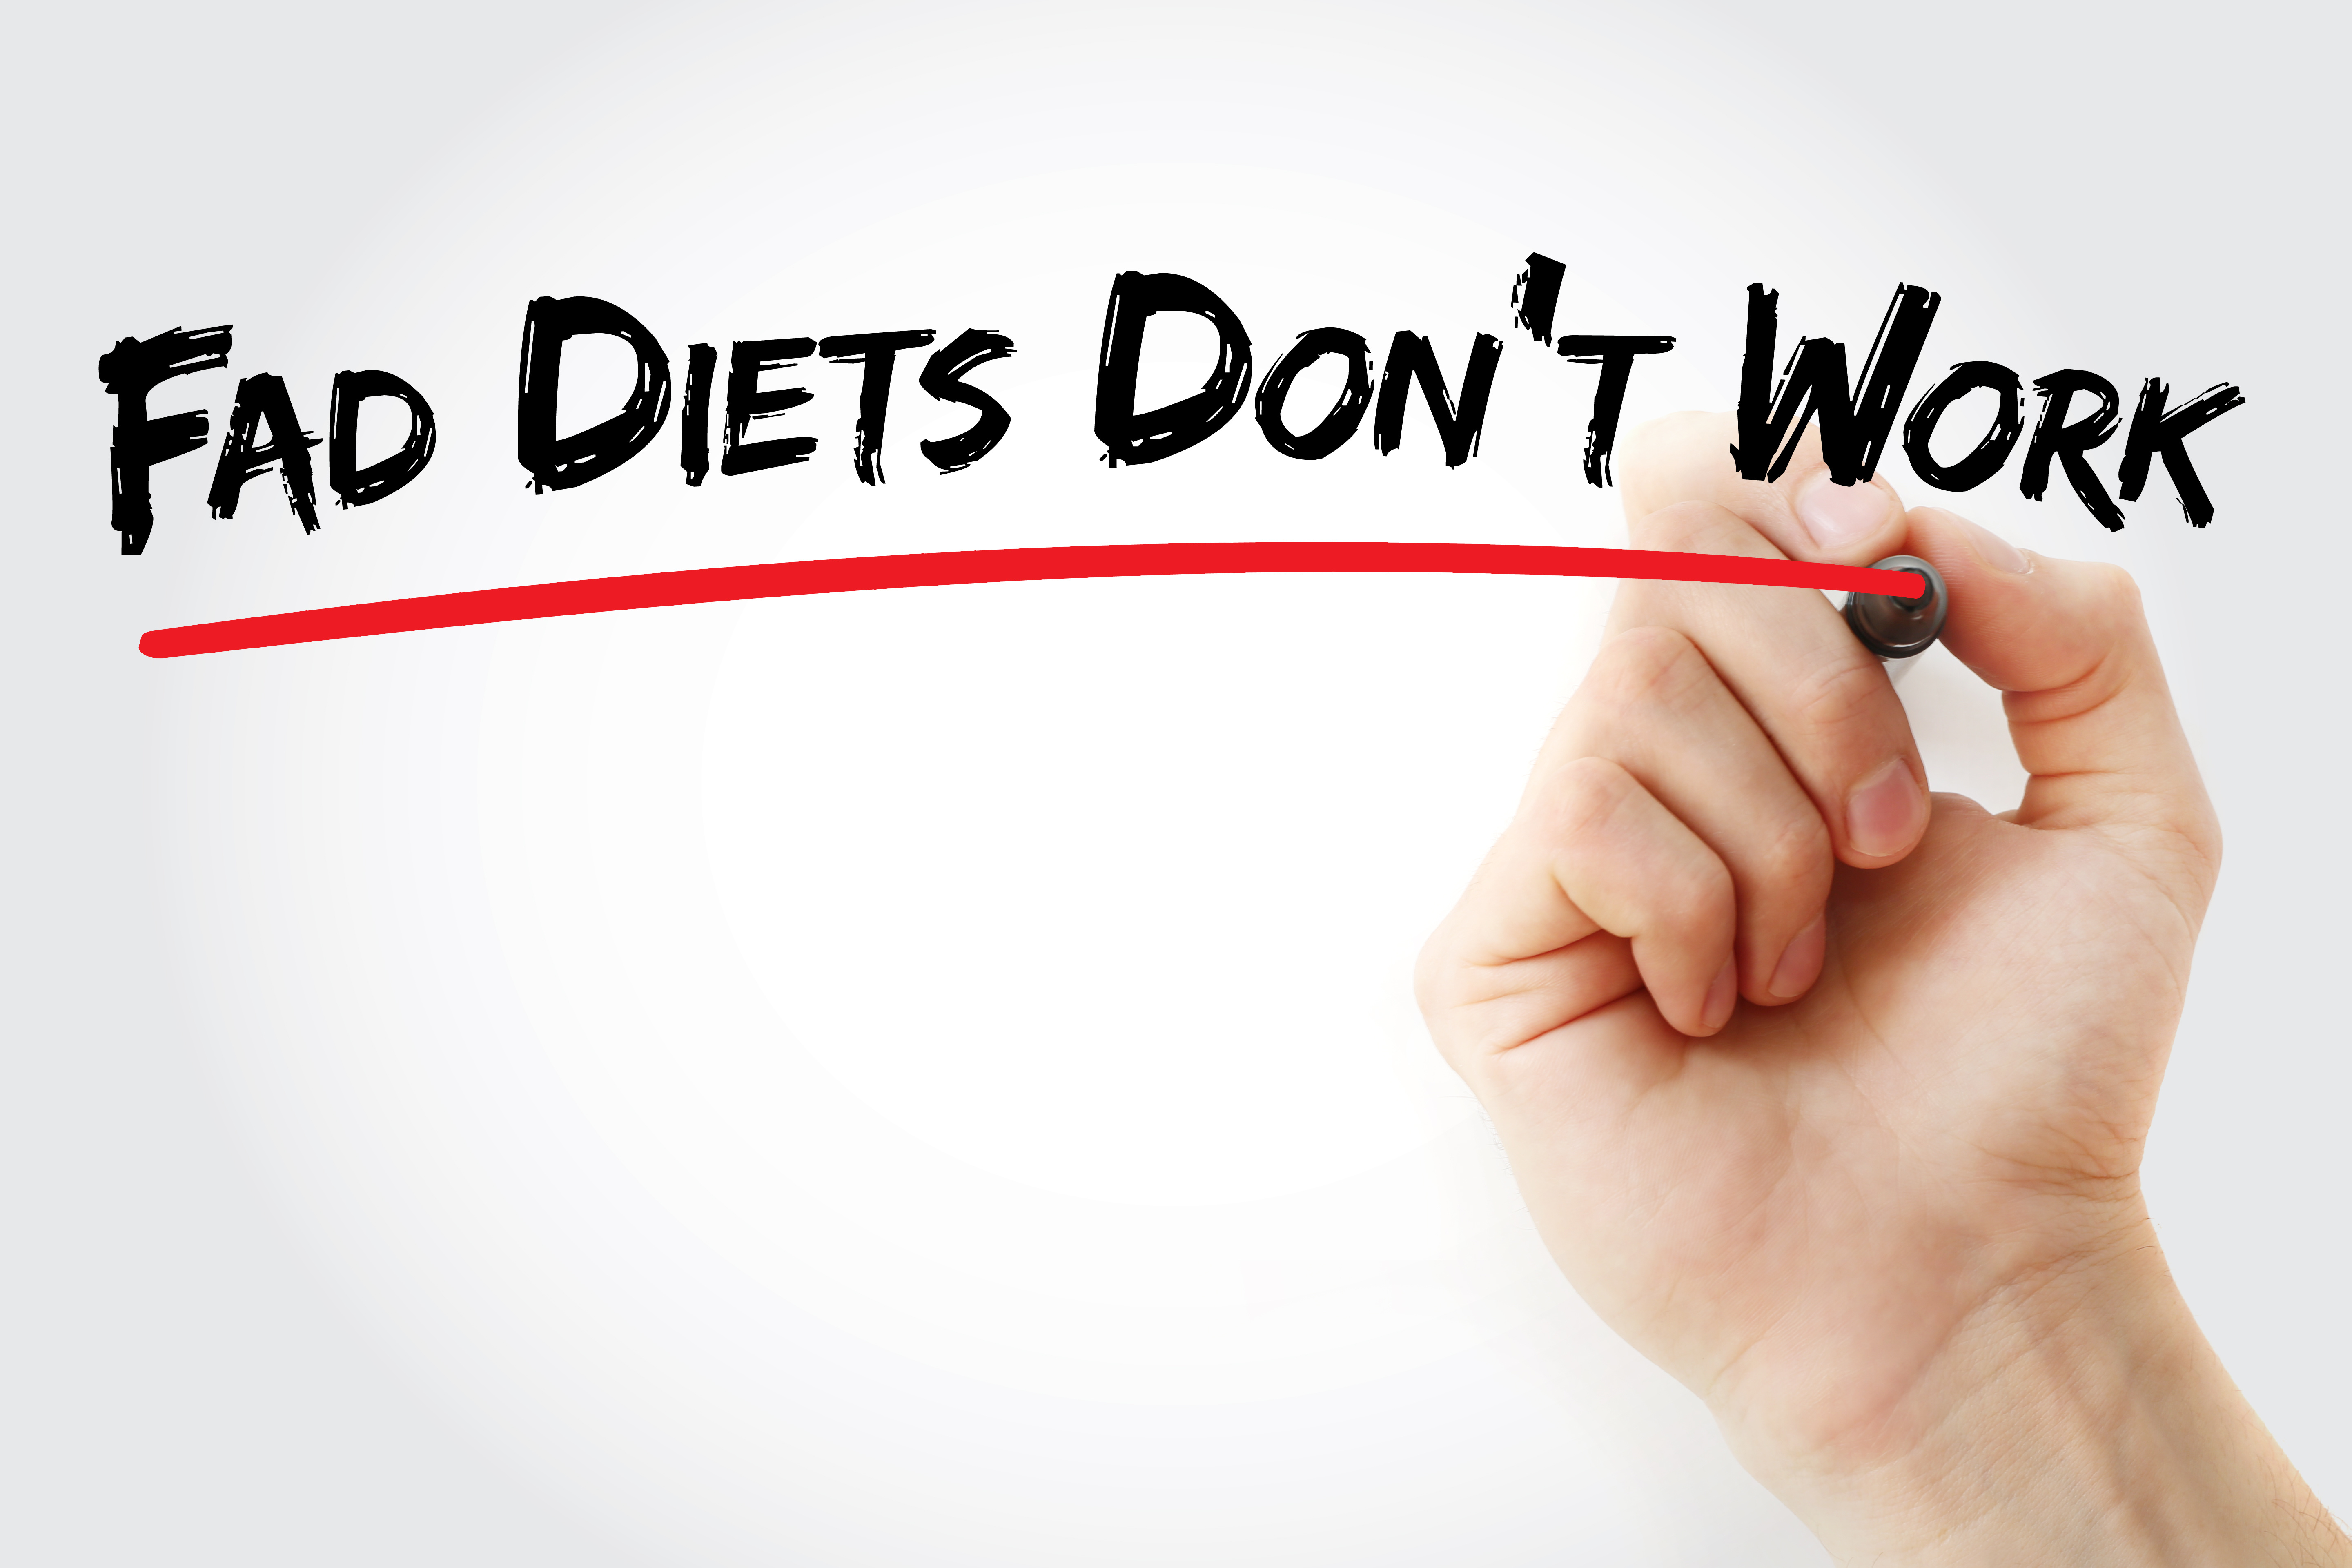 Cut Calories, Lose Weight, Right? Not So Fast!